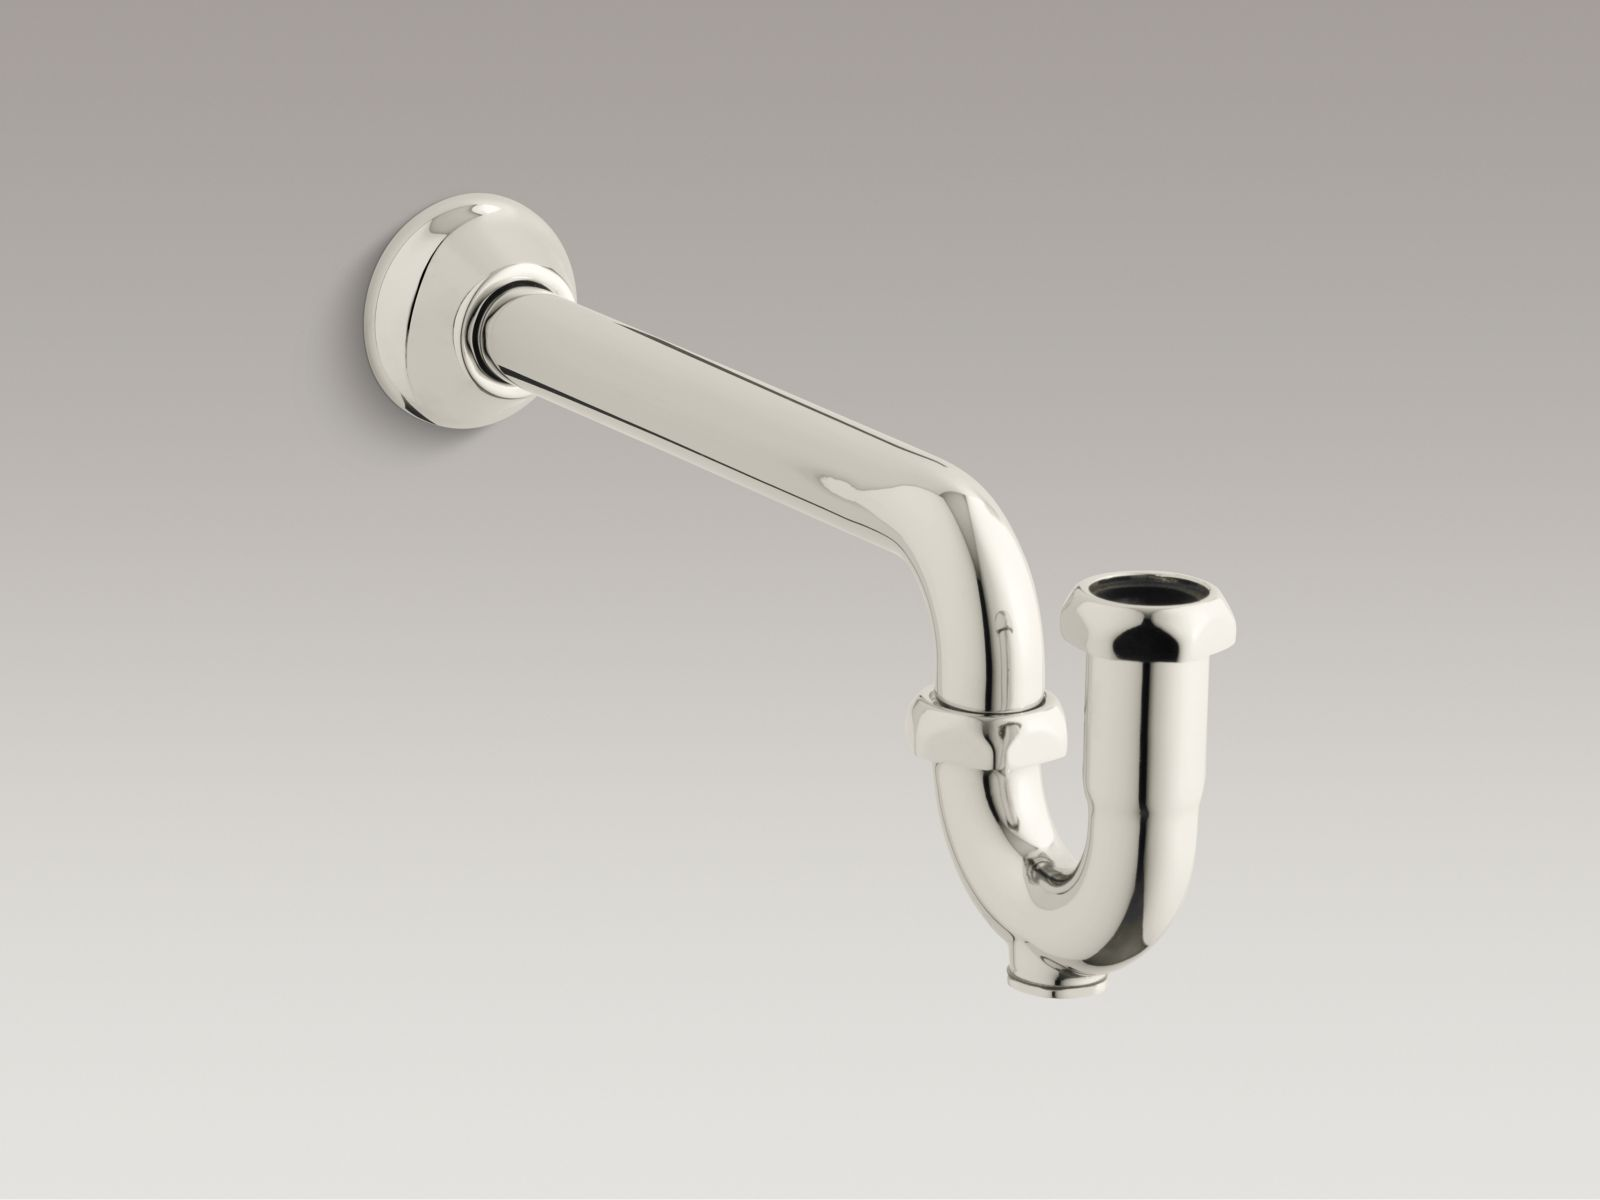 "Kohler K-9018-SN Adjustable 1-1/4"" x 1-1/4"" P-Trap with Long Tubing Outlet Vibrant Polished Nickel"